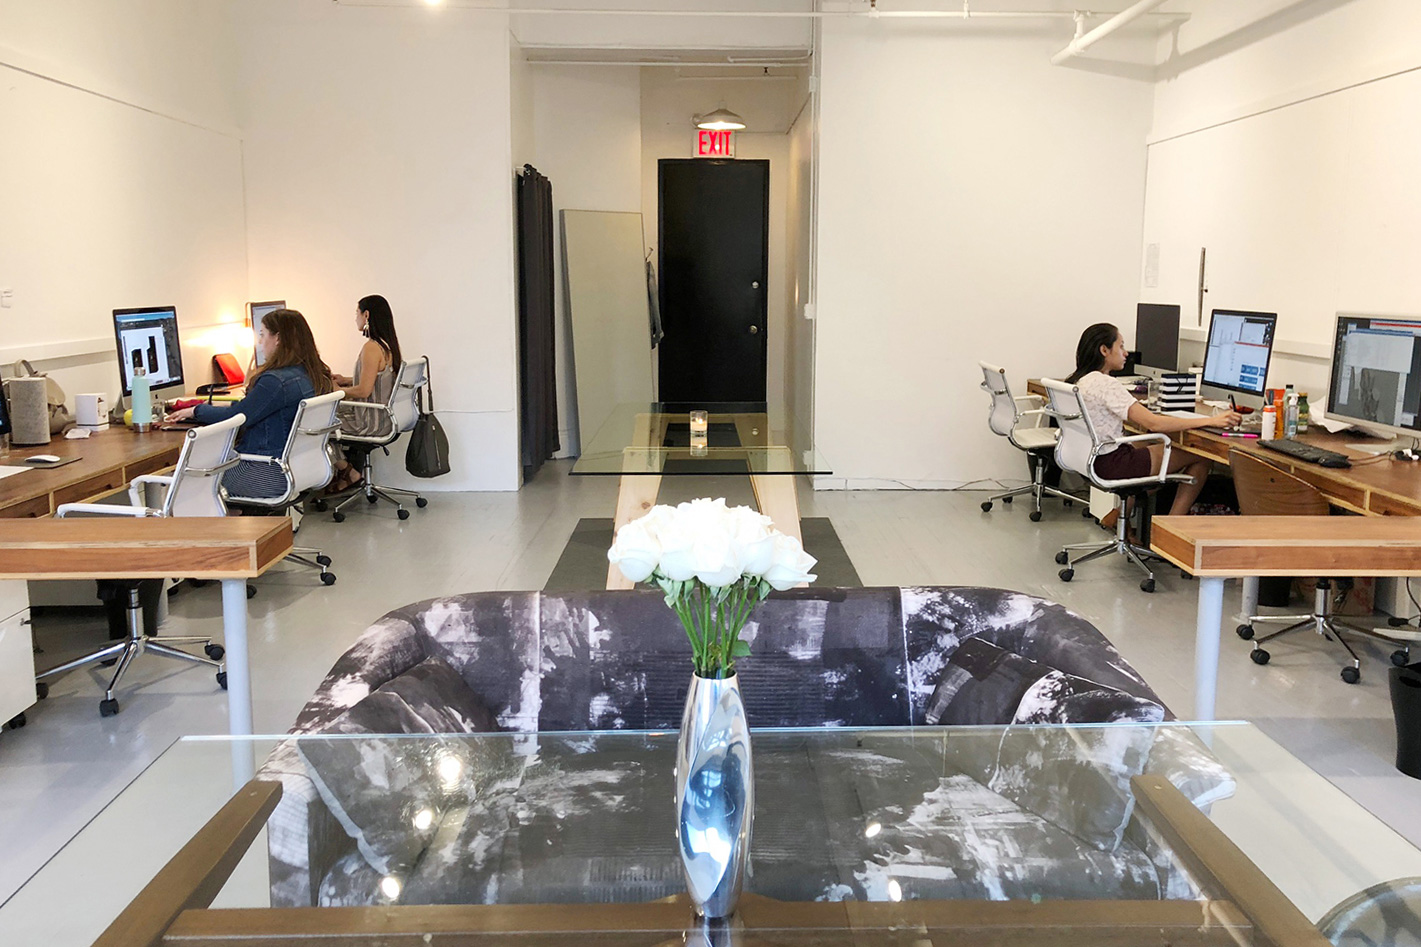 chelsea nyc office sublet